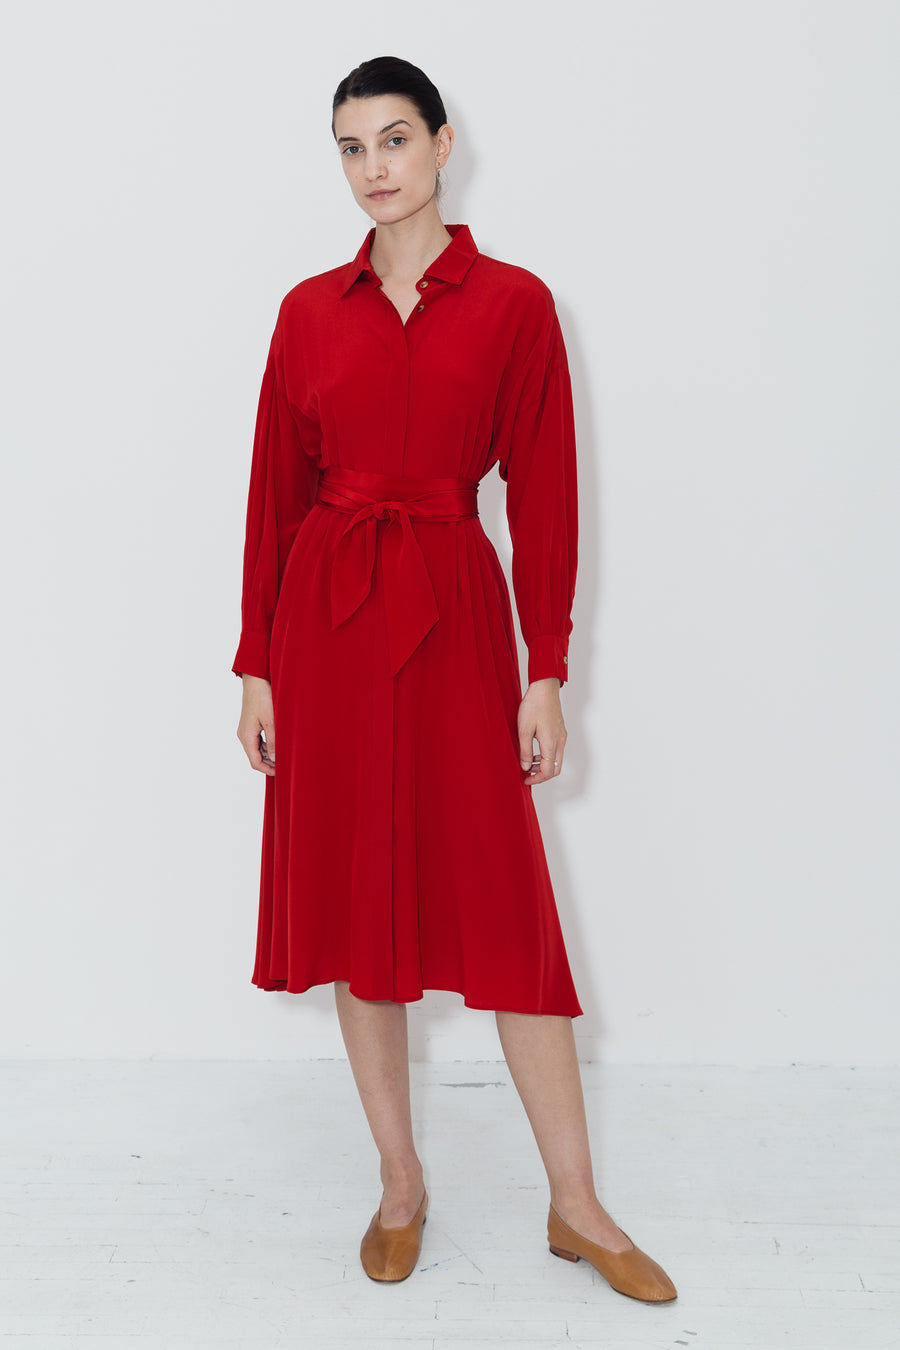 Passion Red Shirt Dress